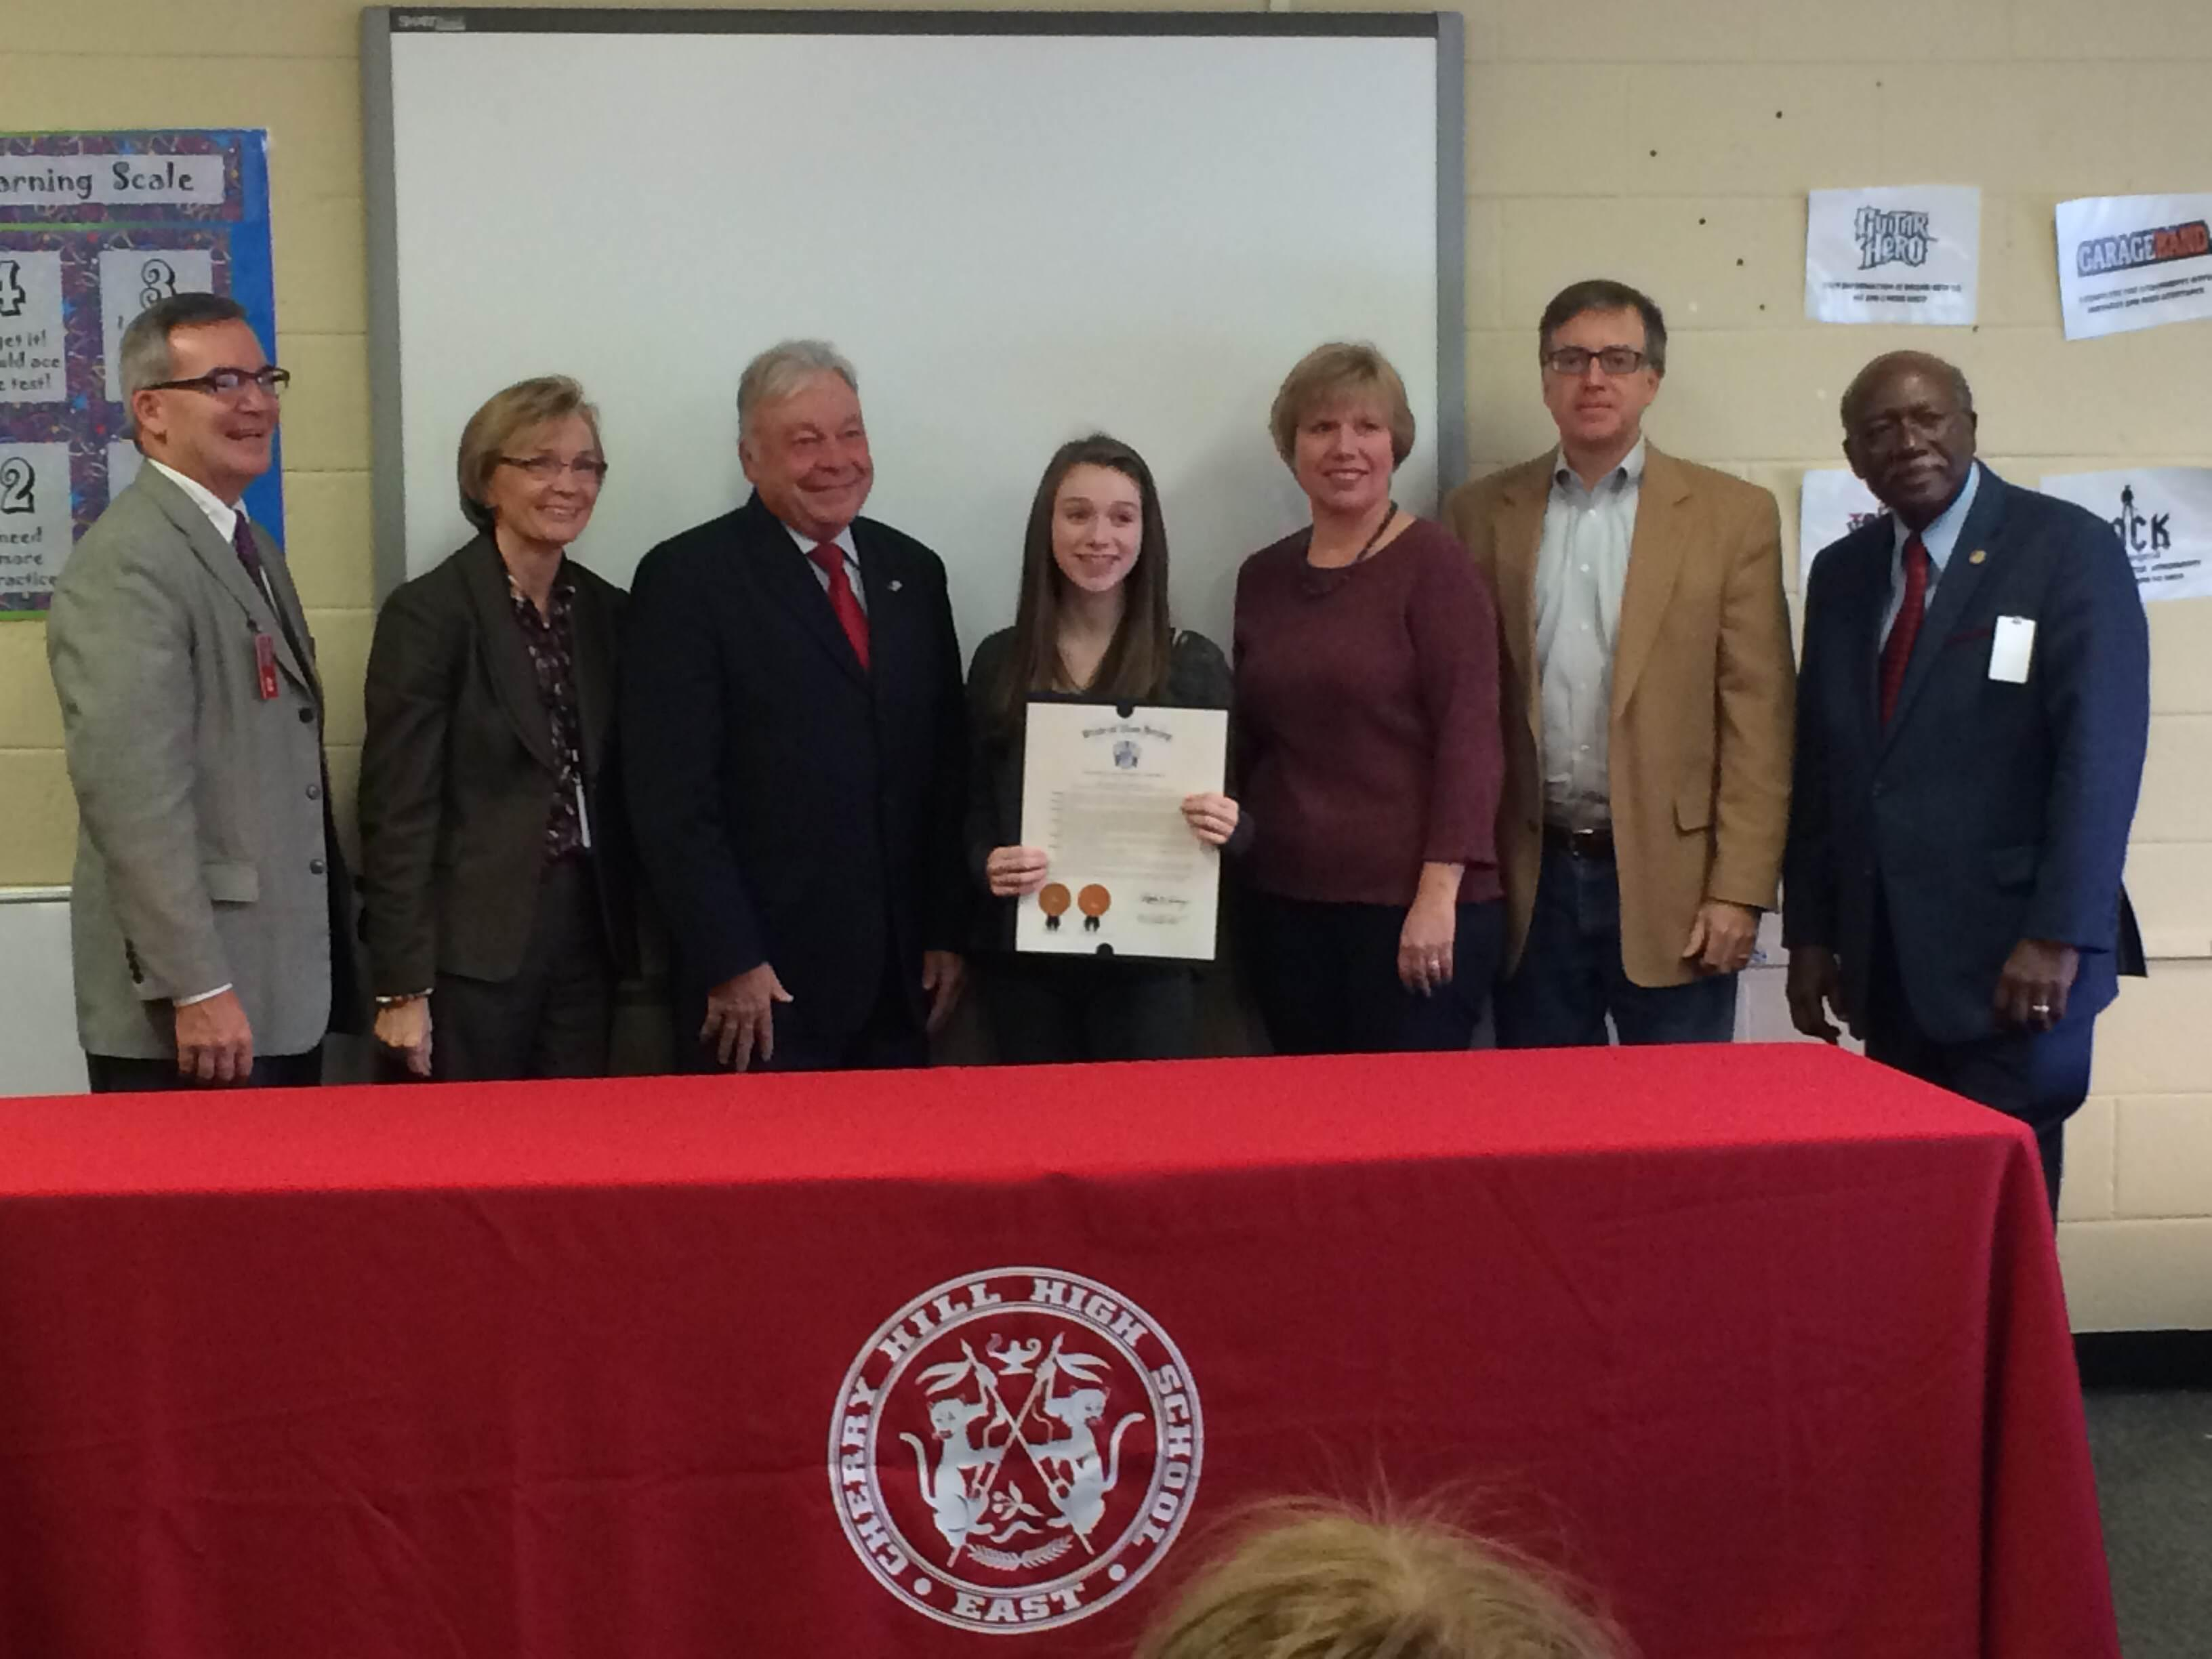 Members of the district congratulate Allison Donahue for her achievements.